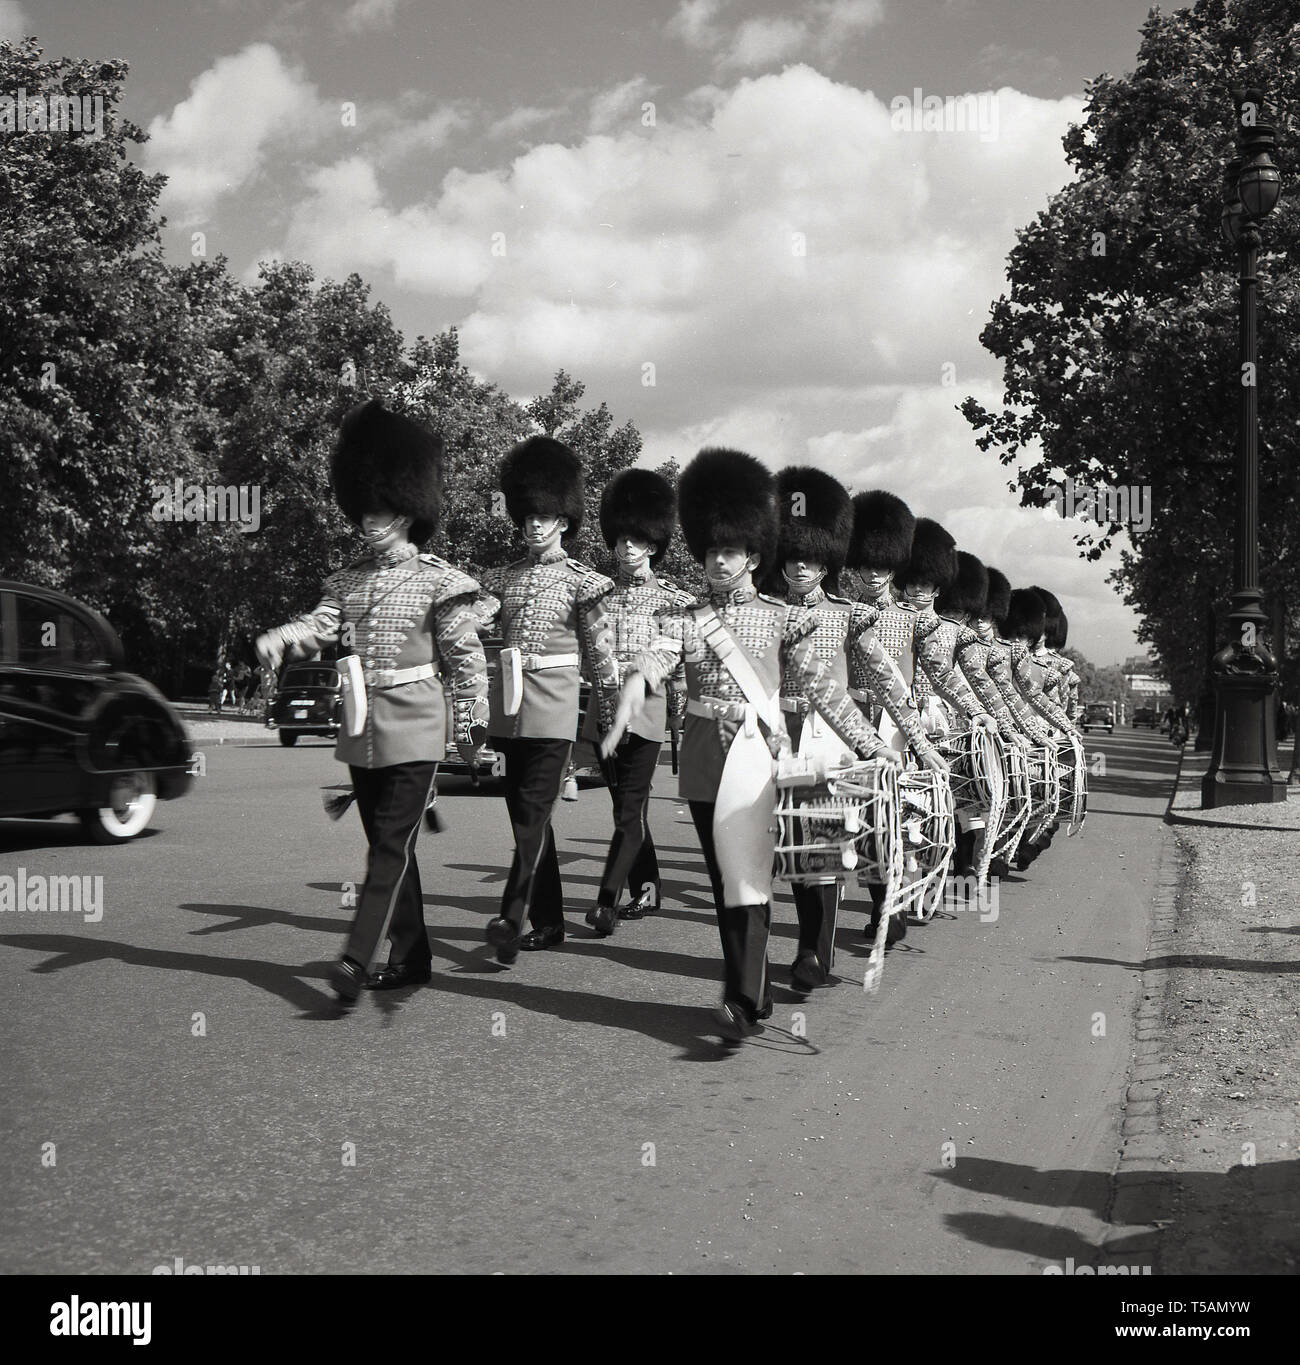 1960s, historical, 1st Battalion Grenadier Guards Corps of Drums in full uniform and bearskin helmets marching along The Mall, road between Buckingham Palace and Trafalgar Square, London, England, - Stock Image